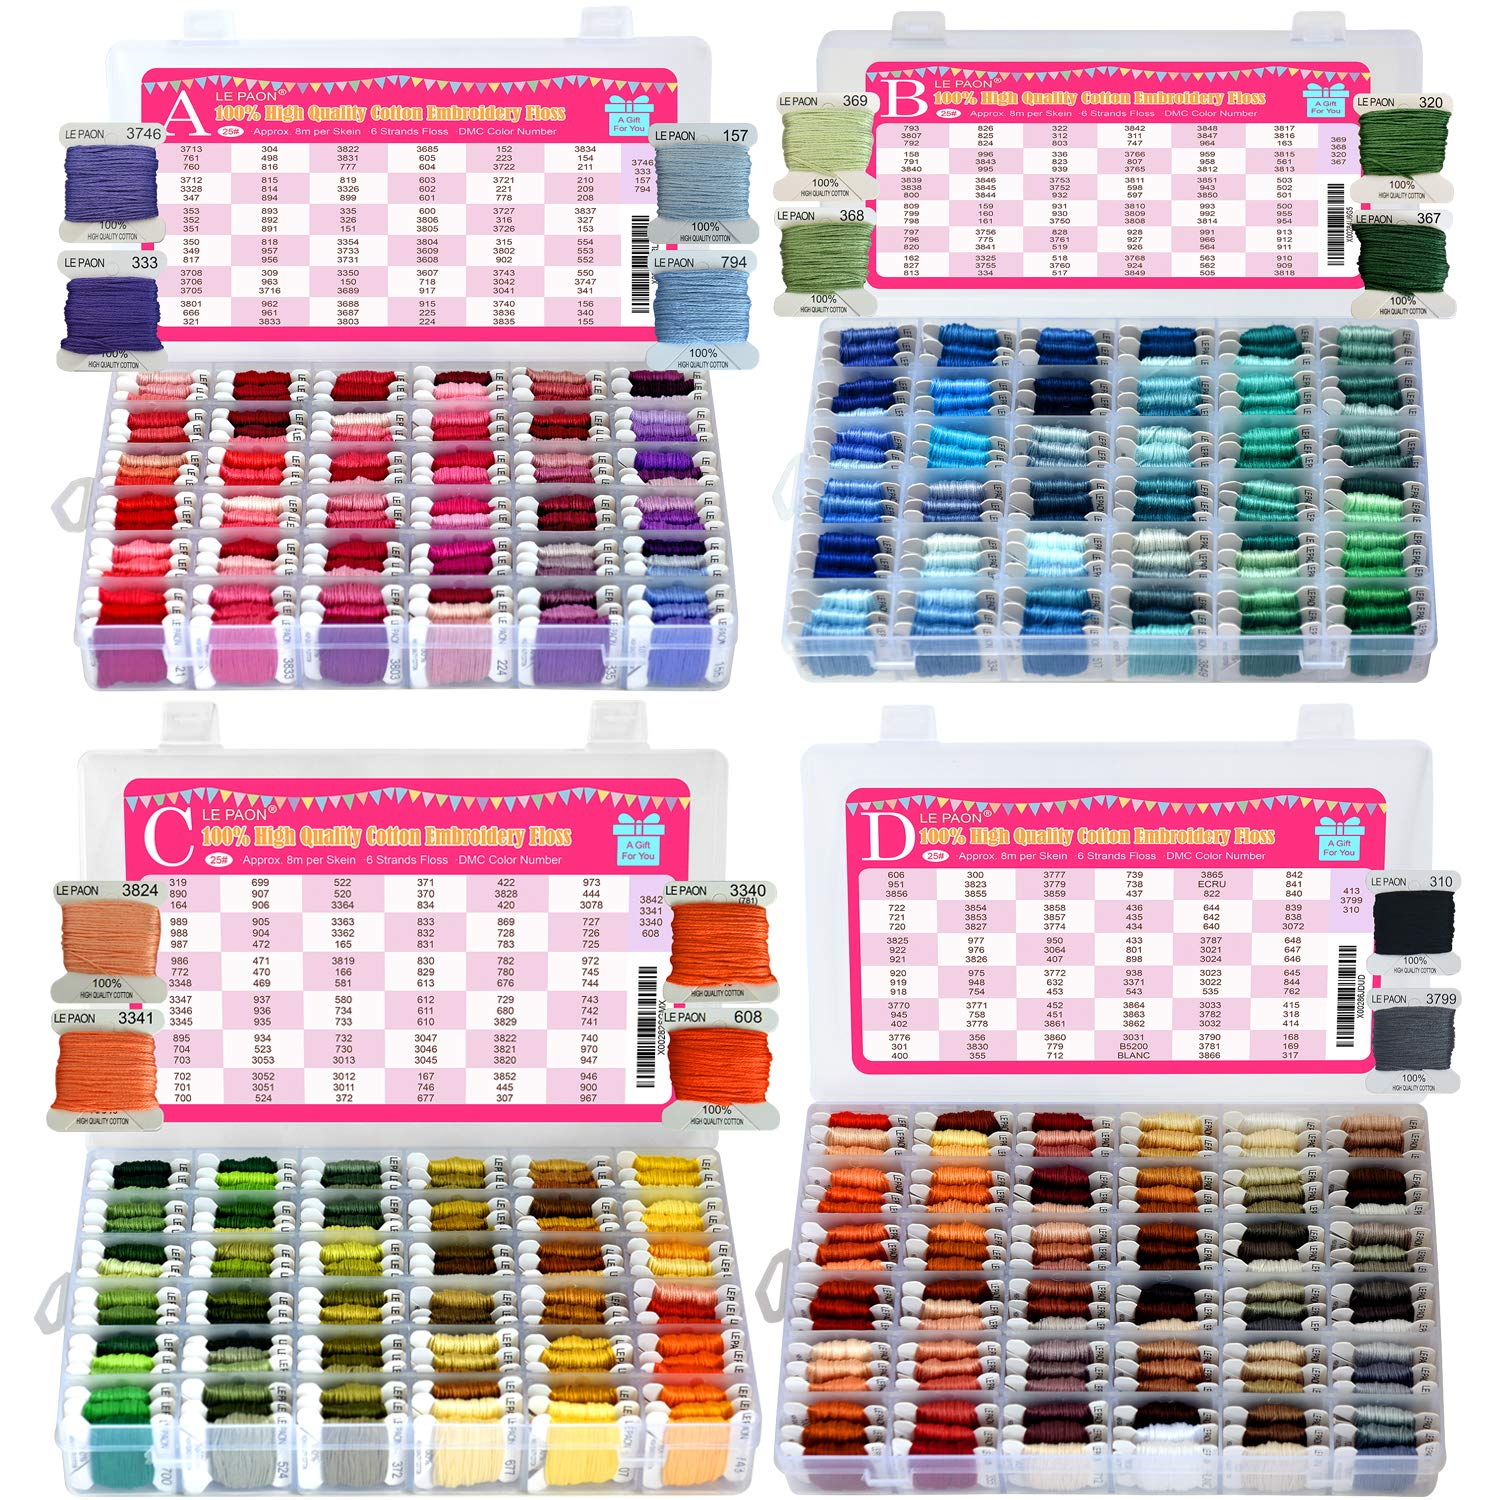 Premium Embroidery Floss & Bracelet String Kits with Organizer Storage Box-447 Colors Cross Stitch Threads Set-Friendship Bracelets Floss-Crafts Floss-Cotton Floss by LE PAON